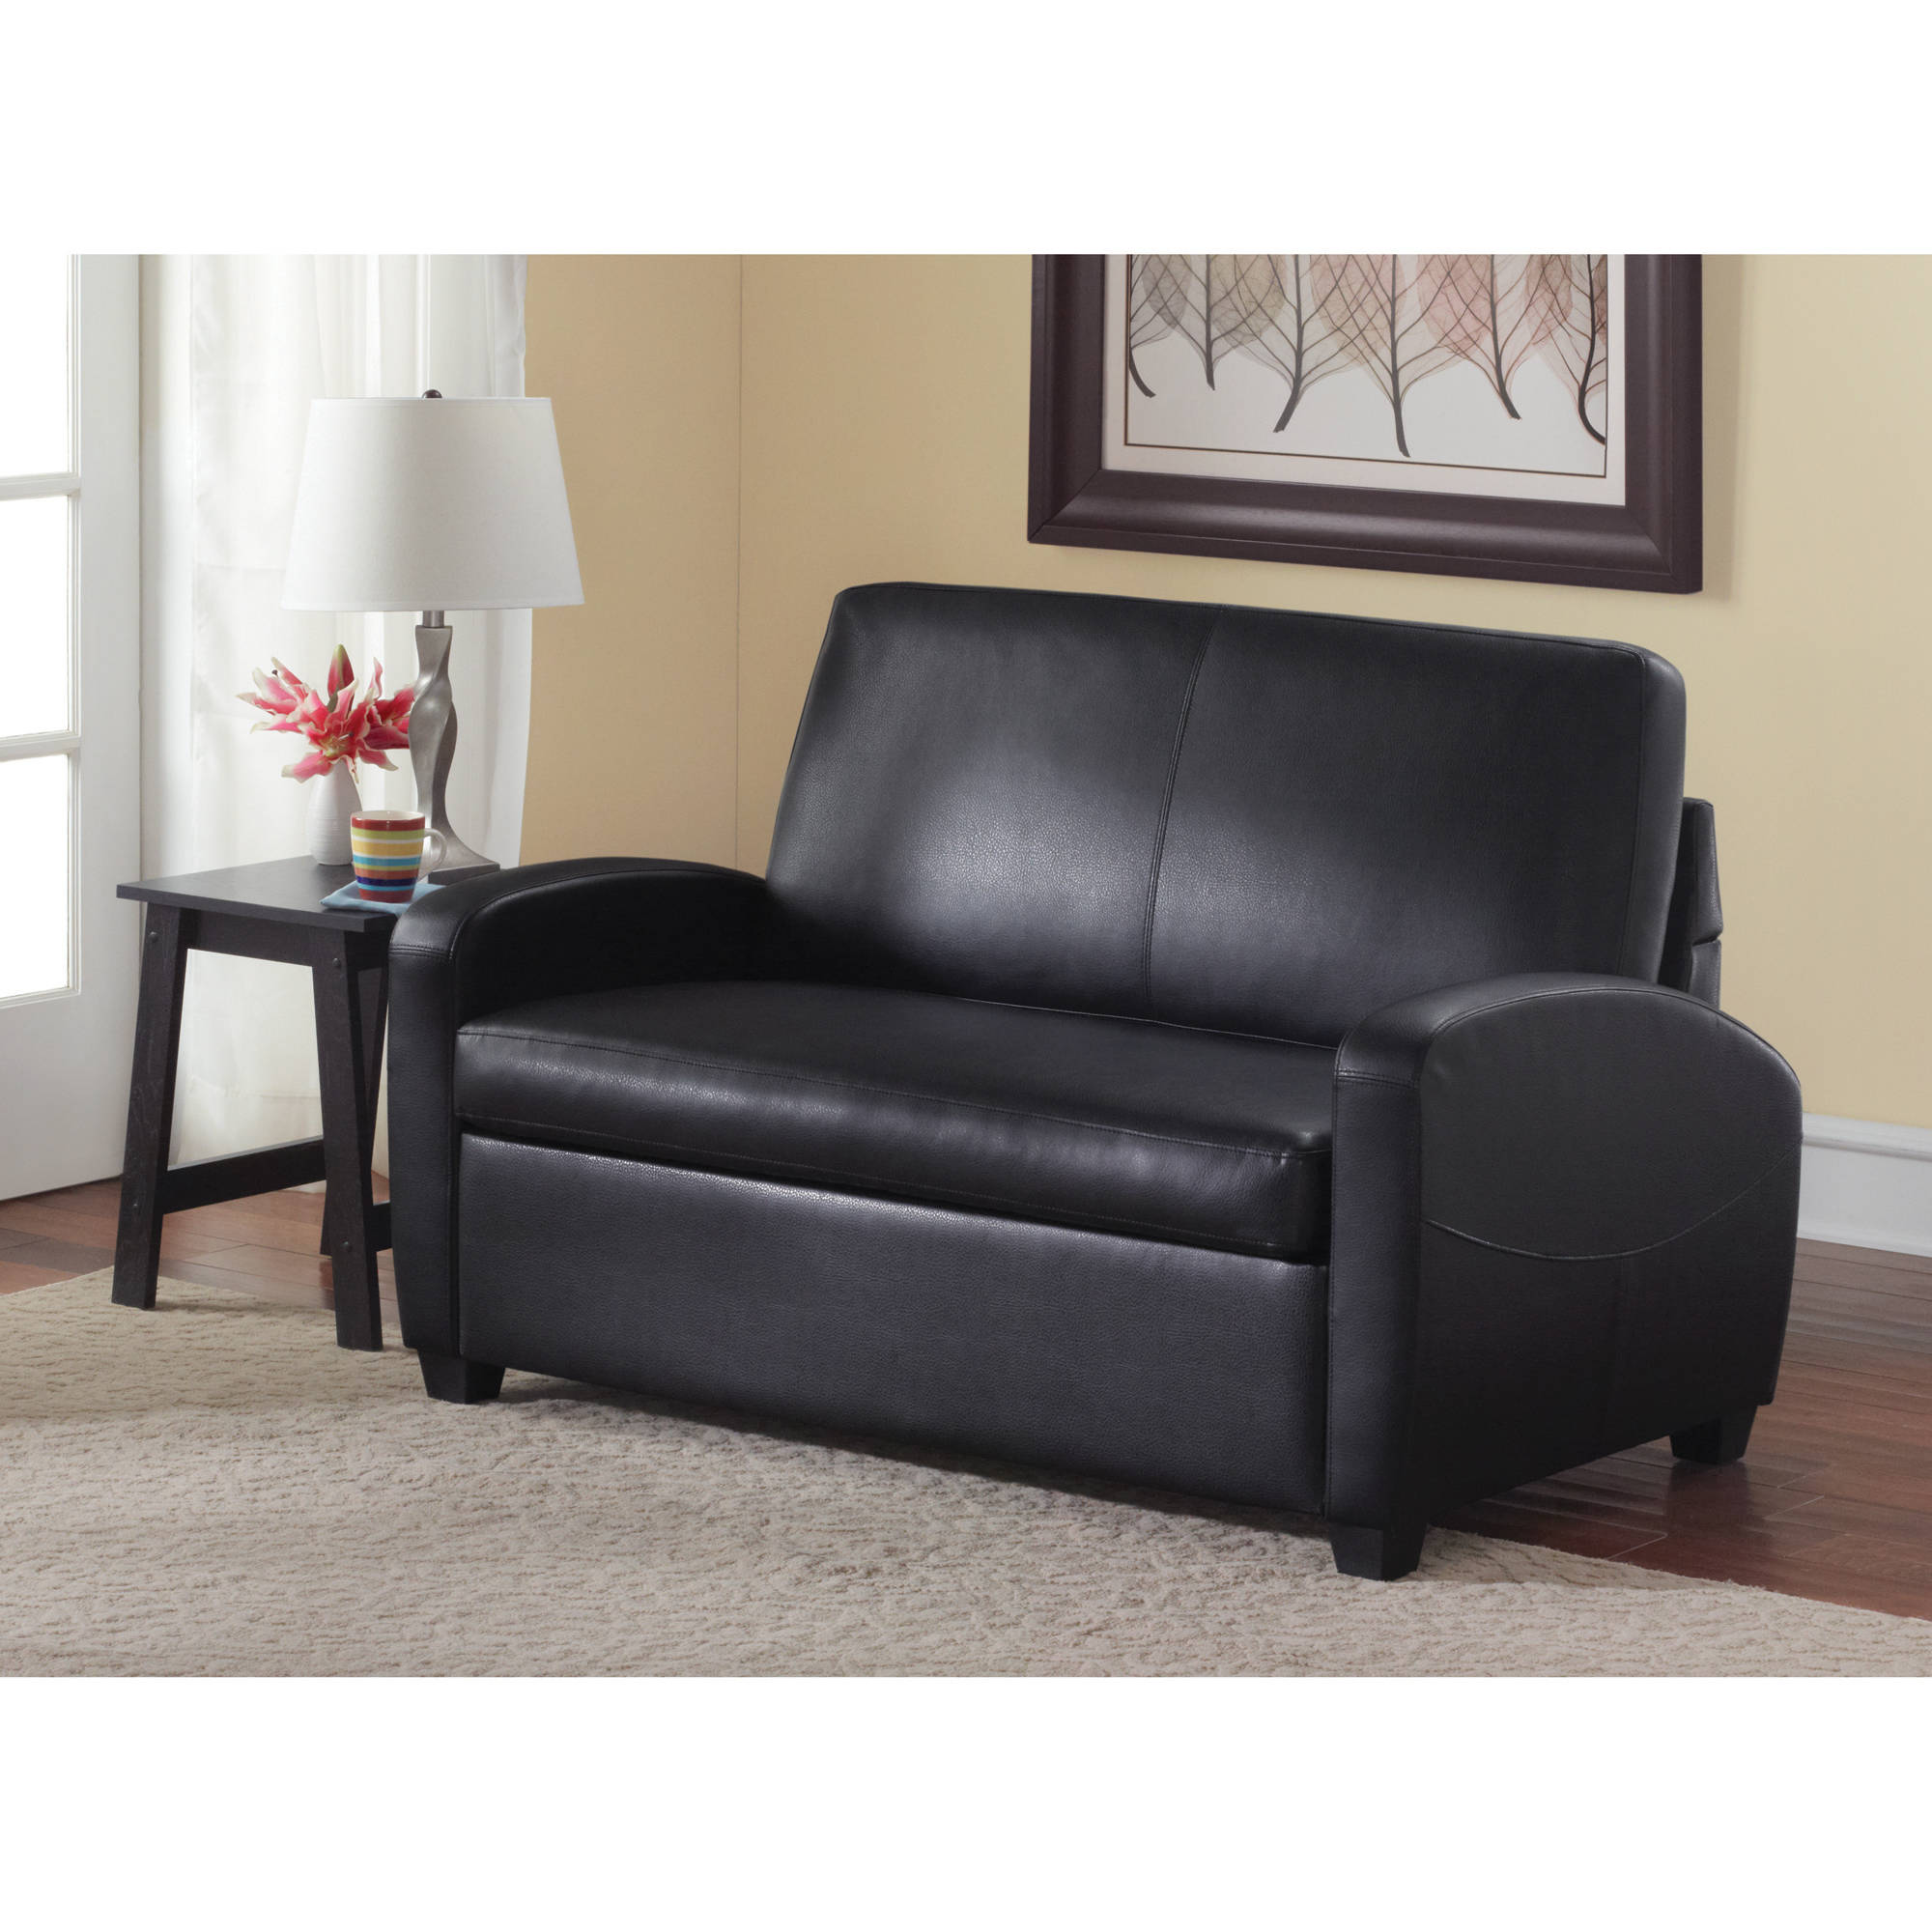 Mainstays Sofa Sleeper Black Walmart